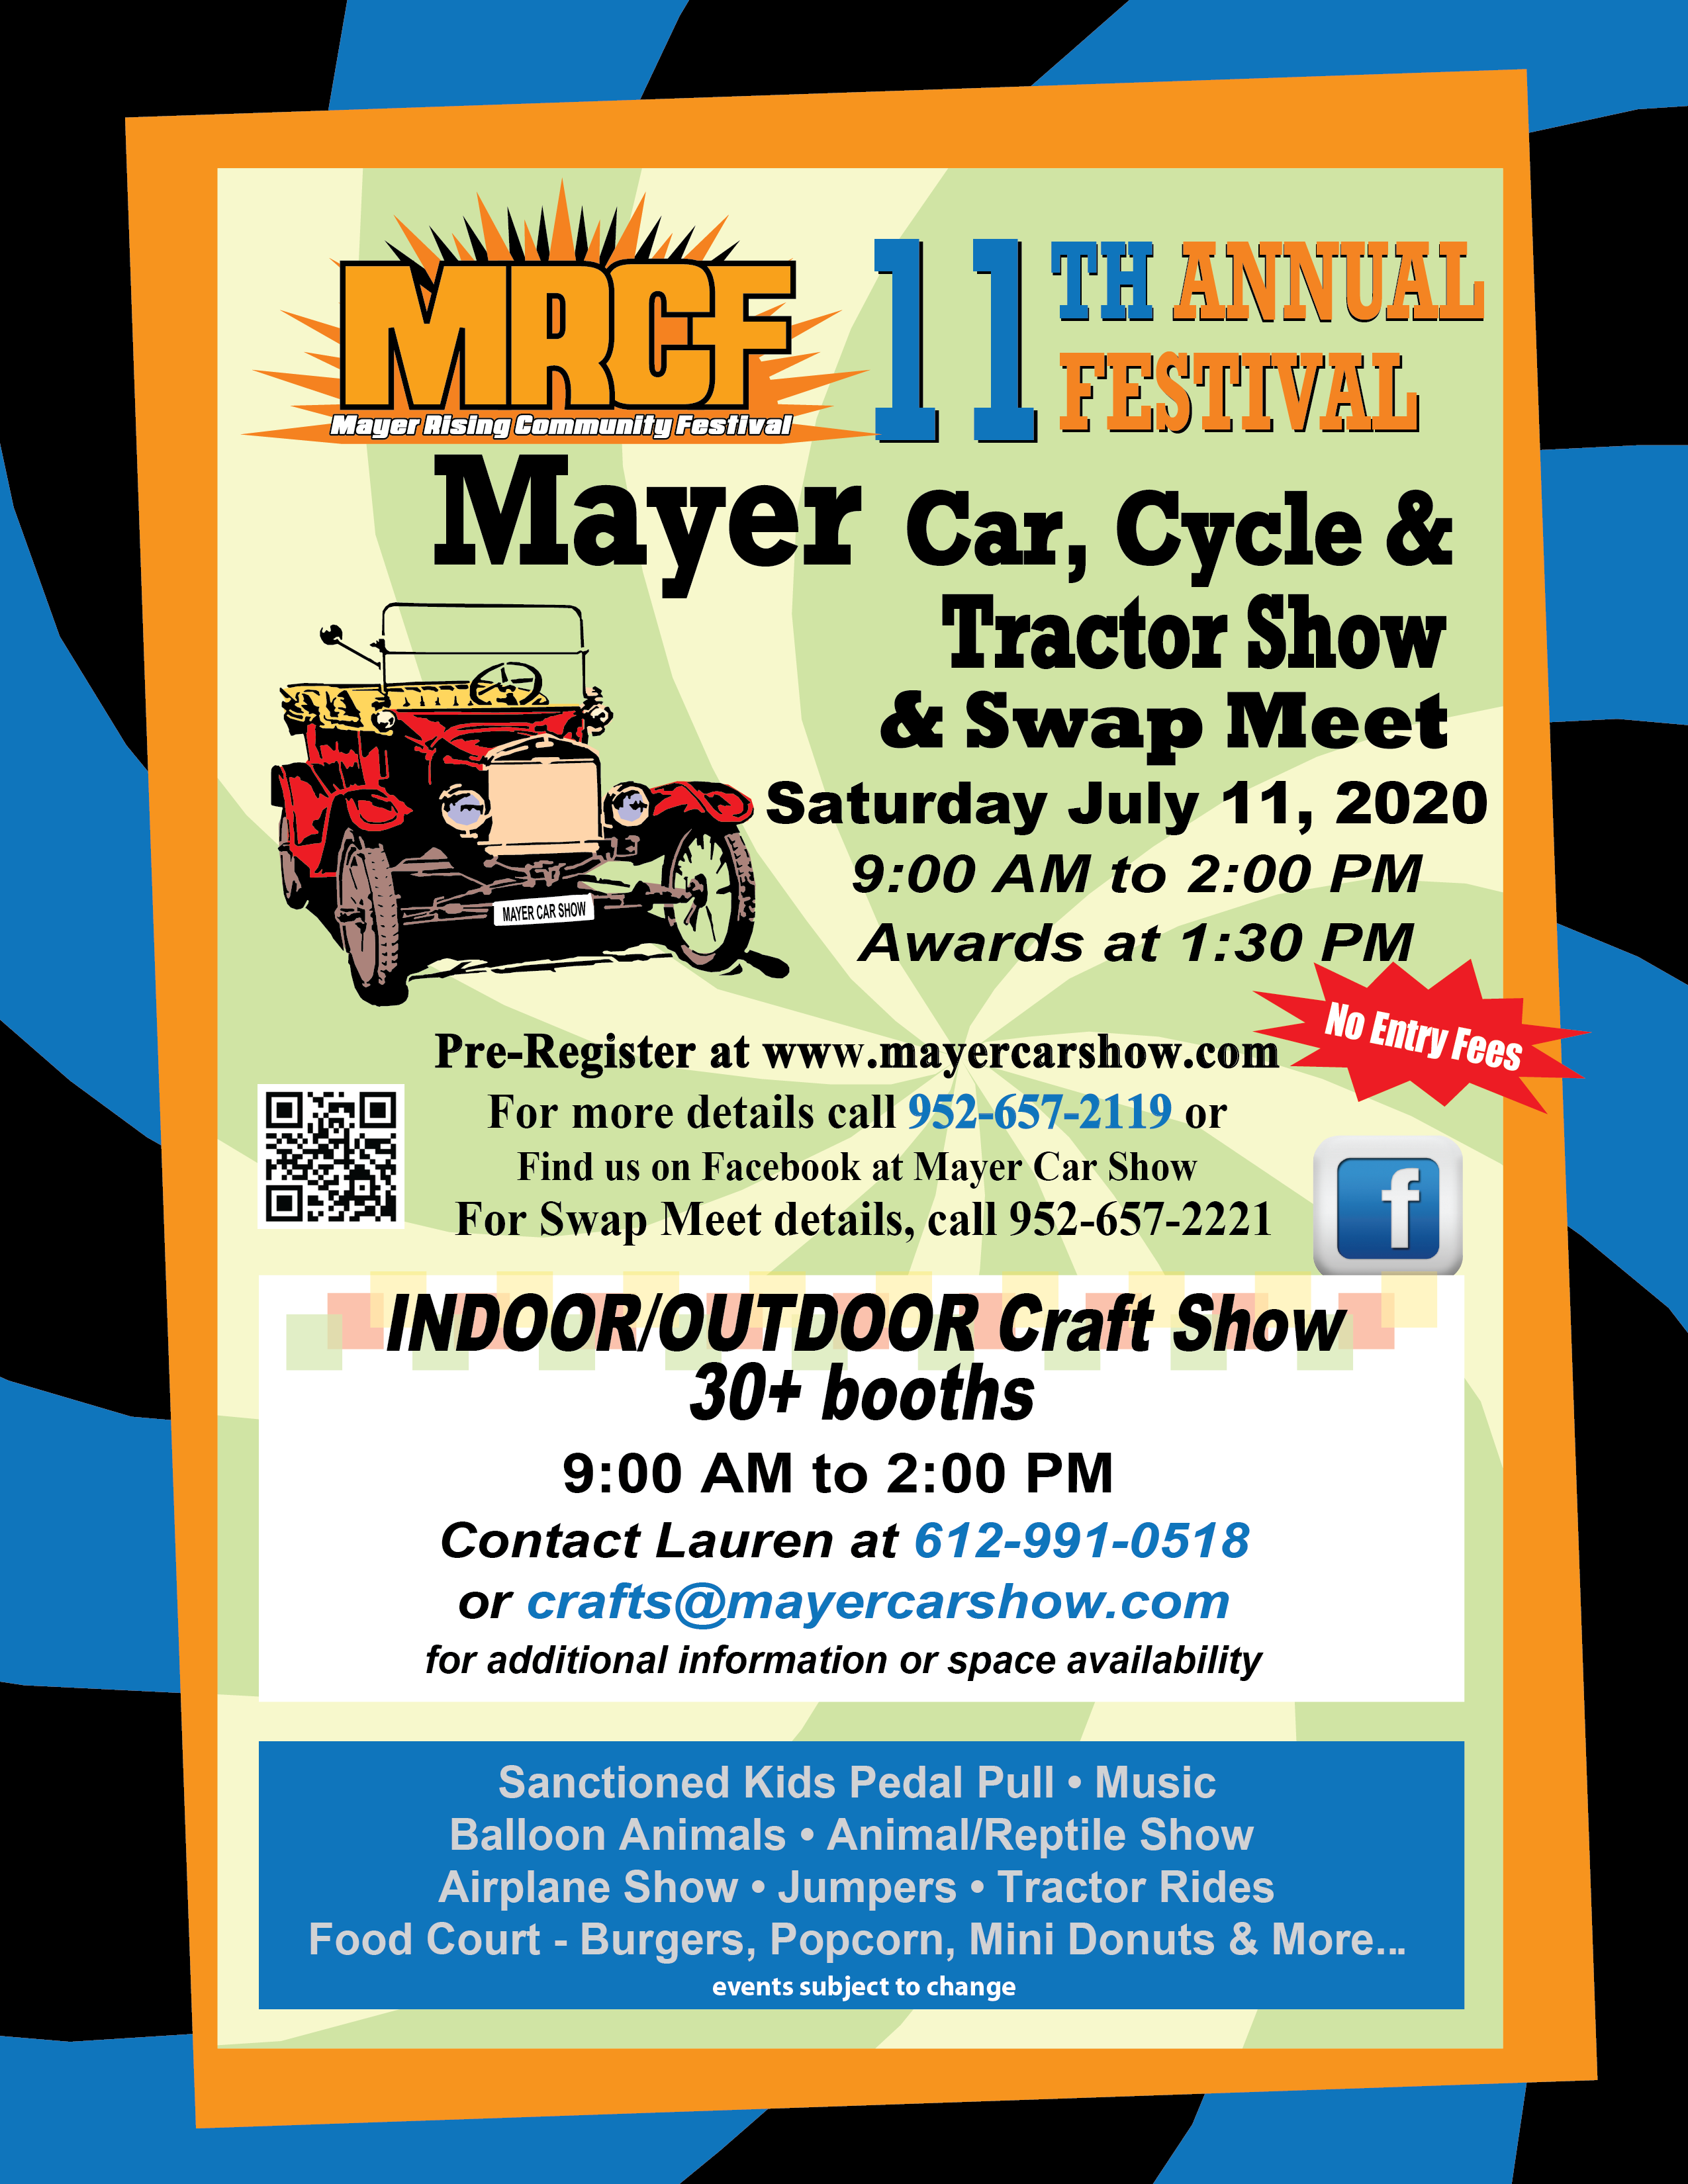 Mayer's 12th Annual Car, Cycle & Tractor Show - Events with Cars